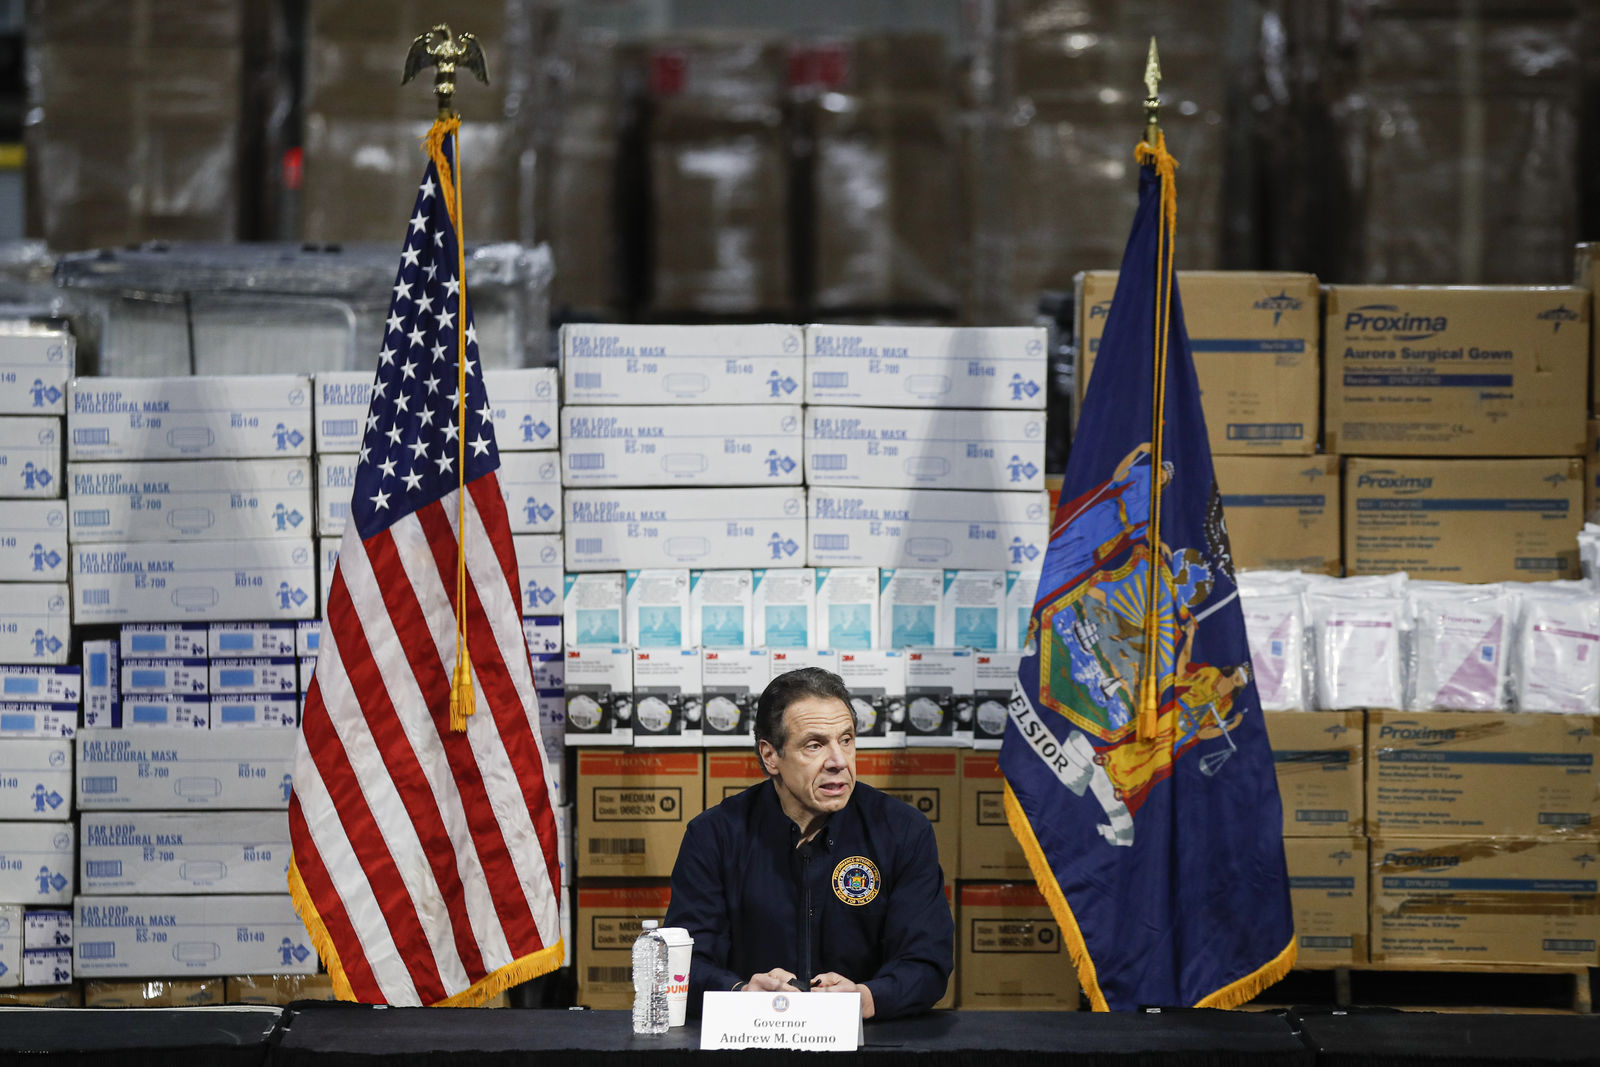 FILE - In this Tuesday, March 24, 2020 file photo, Gov. Andrew Cuomo speaks during a news conference against a backdrop of medical supplies at the Jacob Javits Center that will house a temporary hospital in response to the COVID-19 outbreak in New York. . (AP Photo/John Minchillo)